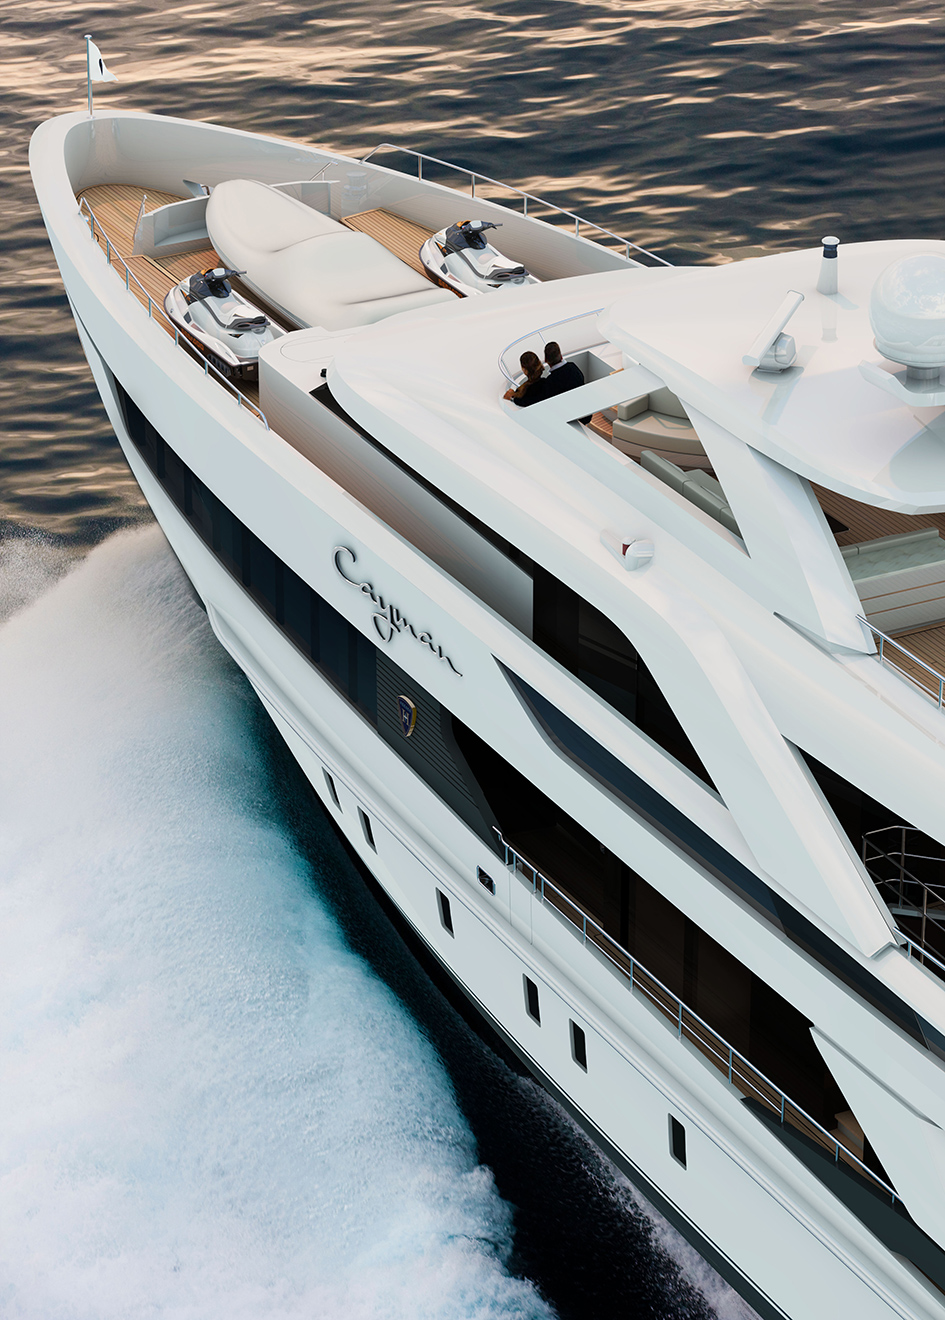 heesen-super-yacht-project-cayman-features-a-fast-displacement-hull-form